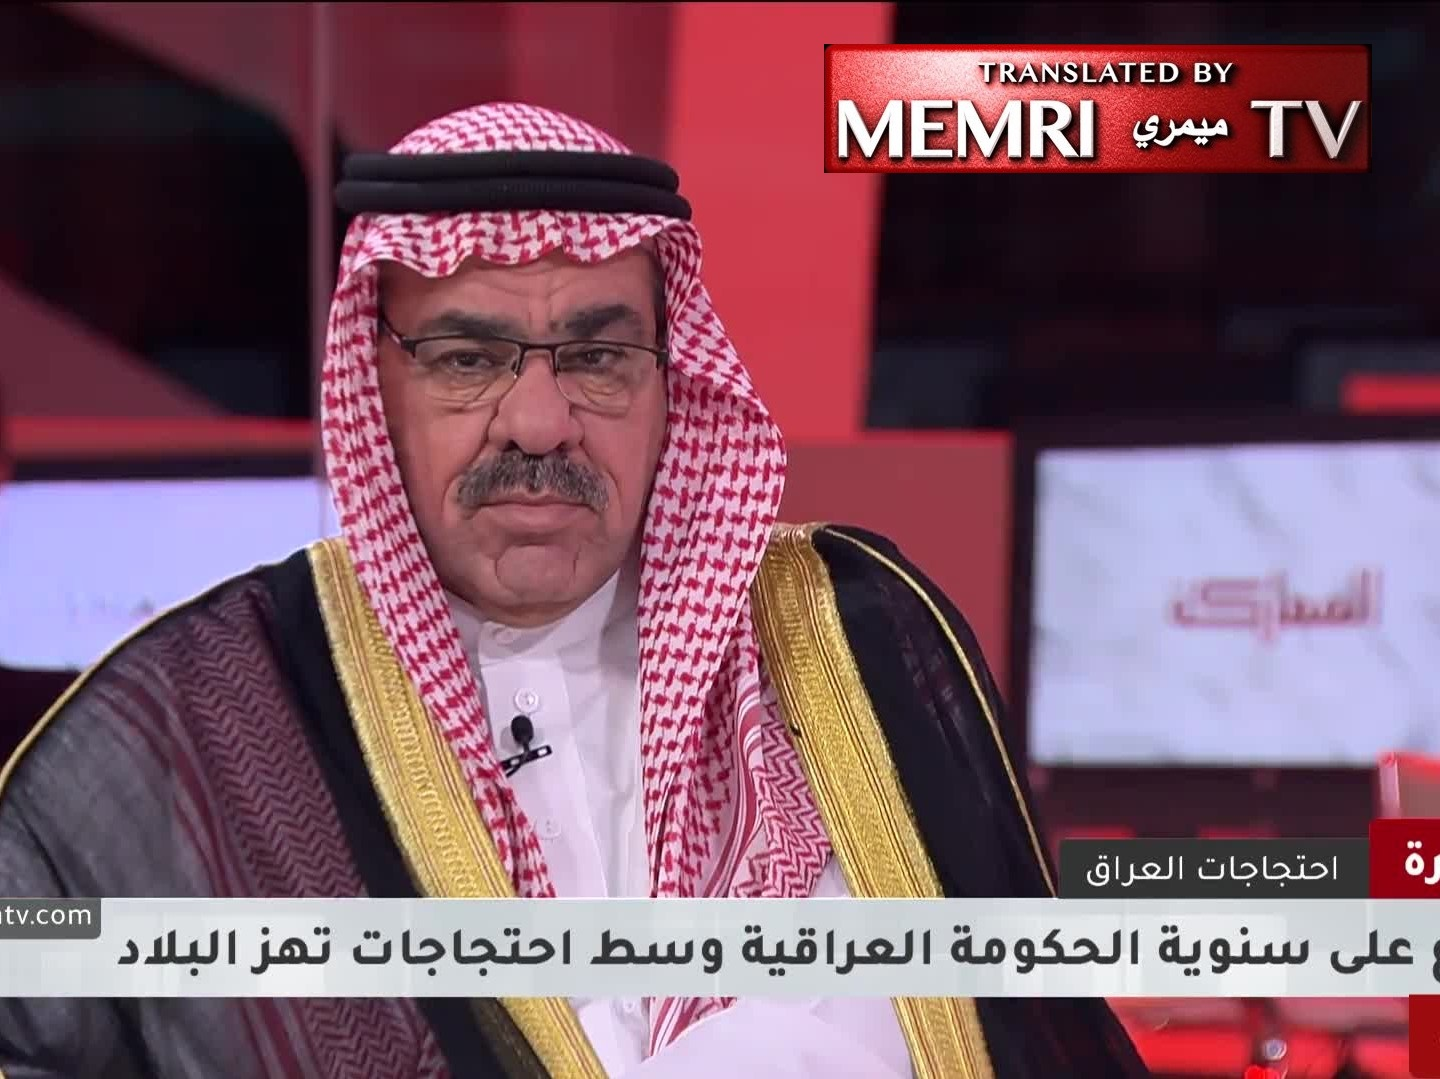 Iraqi Sunni Tribal Leader Sheikh Raad Suleiman: Masked Men Carried out a Large Massacre in Karbala; Iran Is the Source of All Our Problems; Our Politicians Should Resign